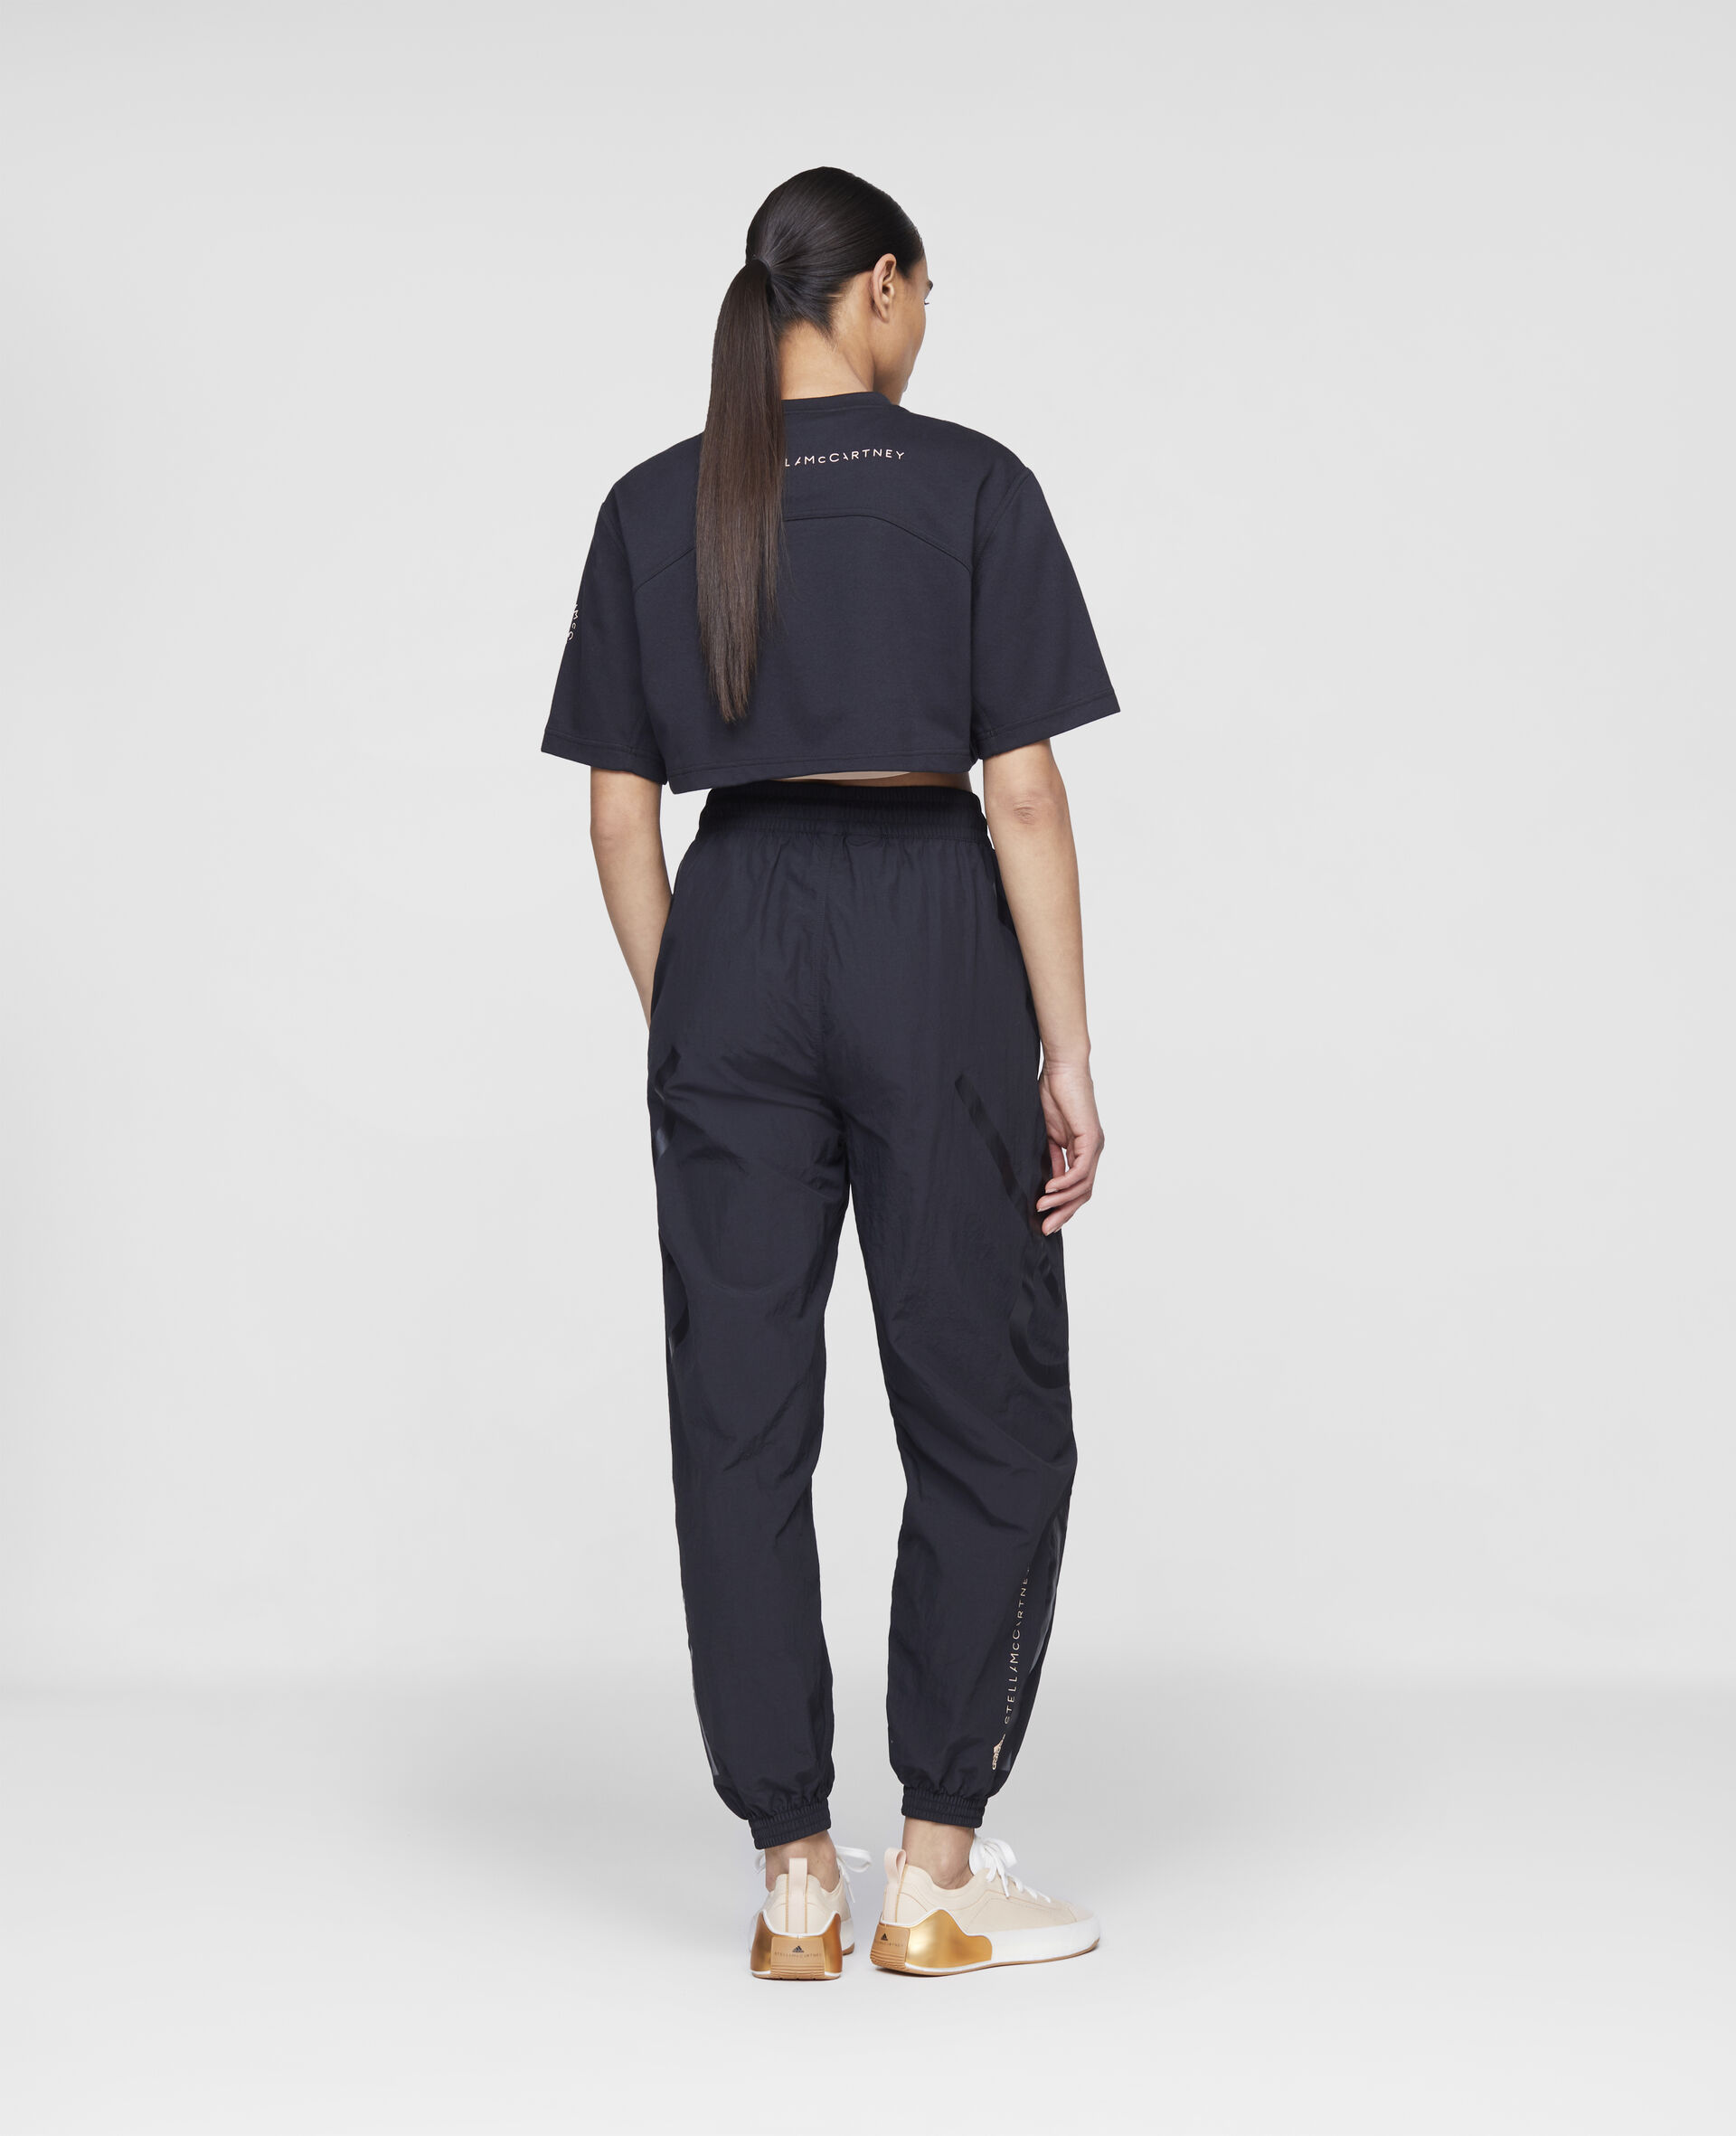 Black Woven Training Trousers-Black-large image number 2